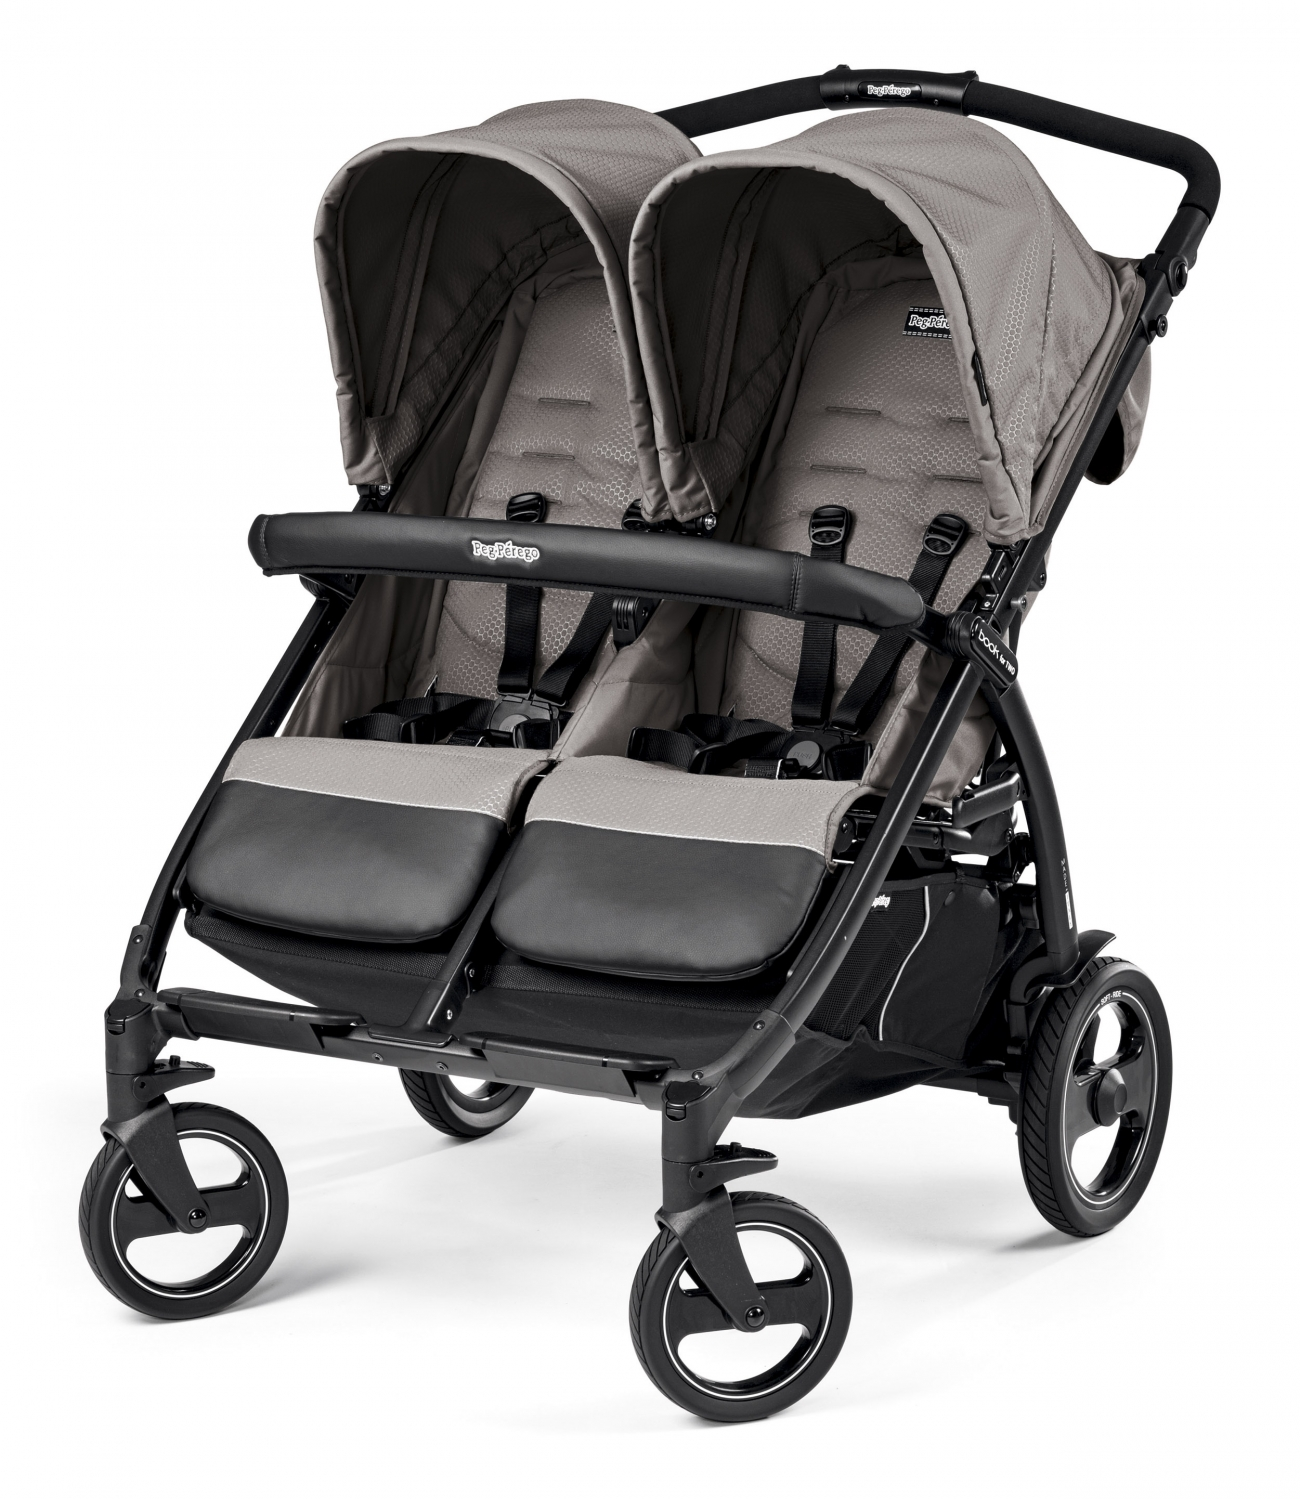 Коляска прогулочная Book For Two PEG-PEREGO 001140 (Mod Beige)